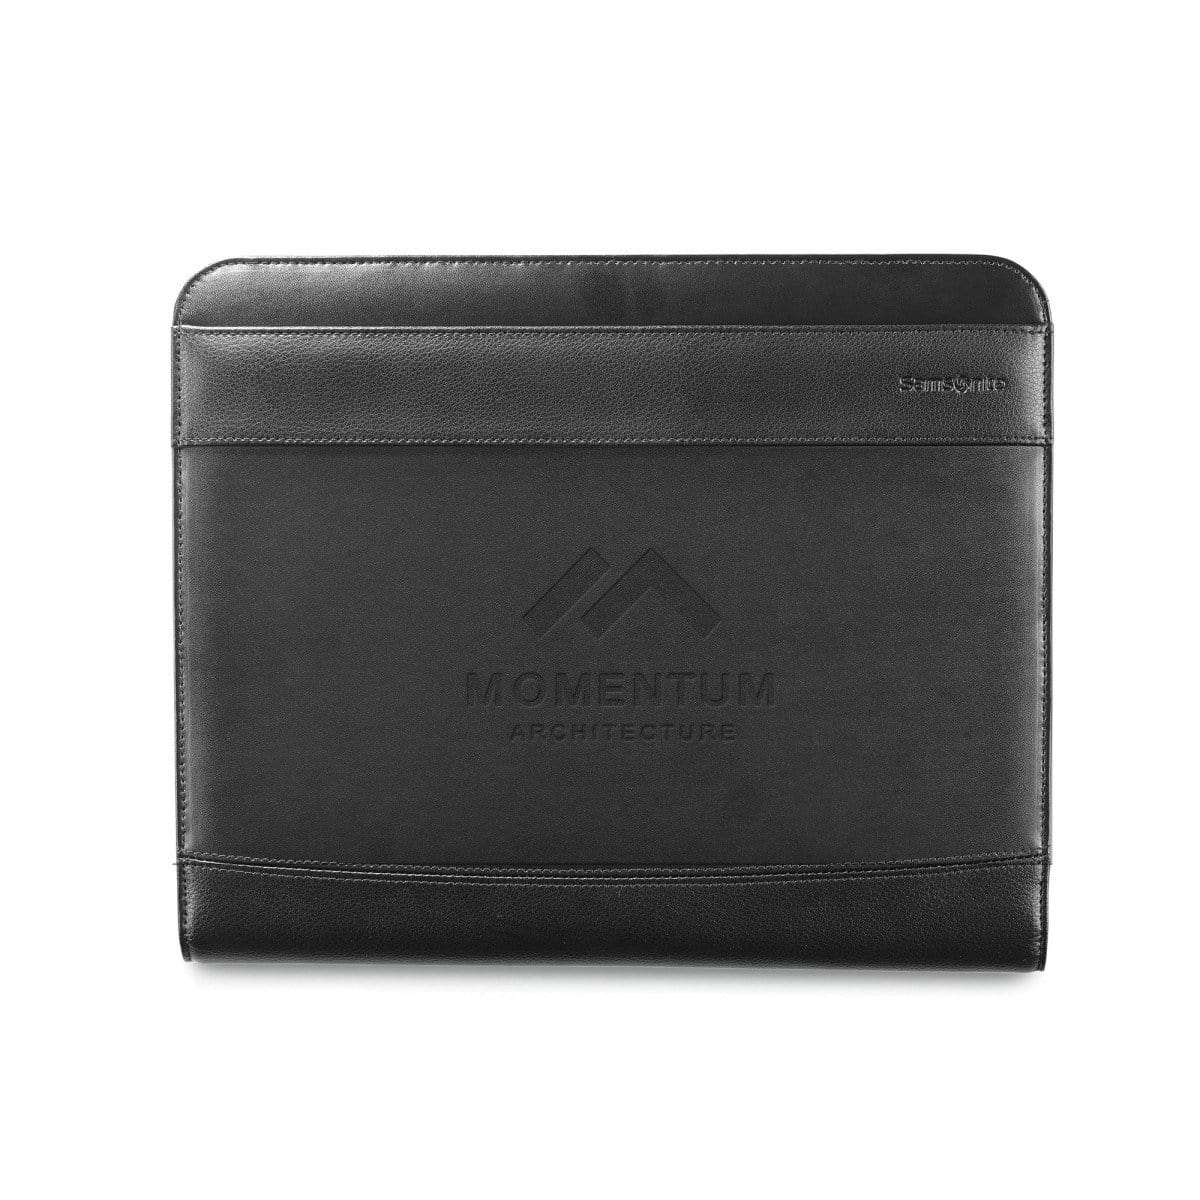 Samsonite Accessories 6 Piece minimum / Black Samsonite - Peyton Leather Writing Pad